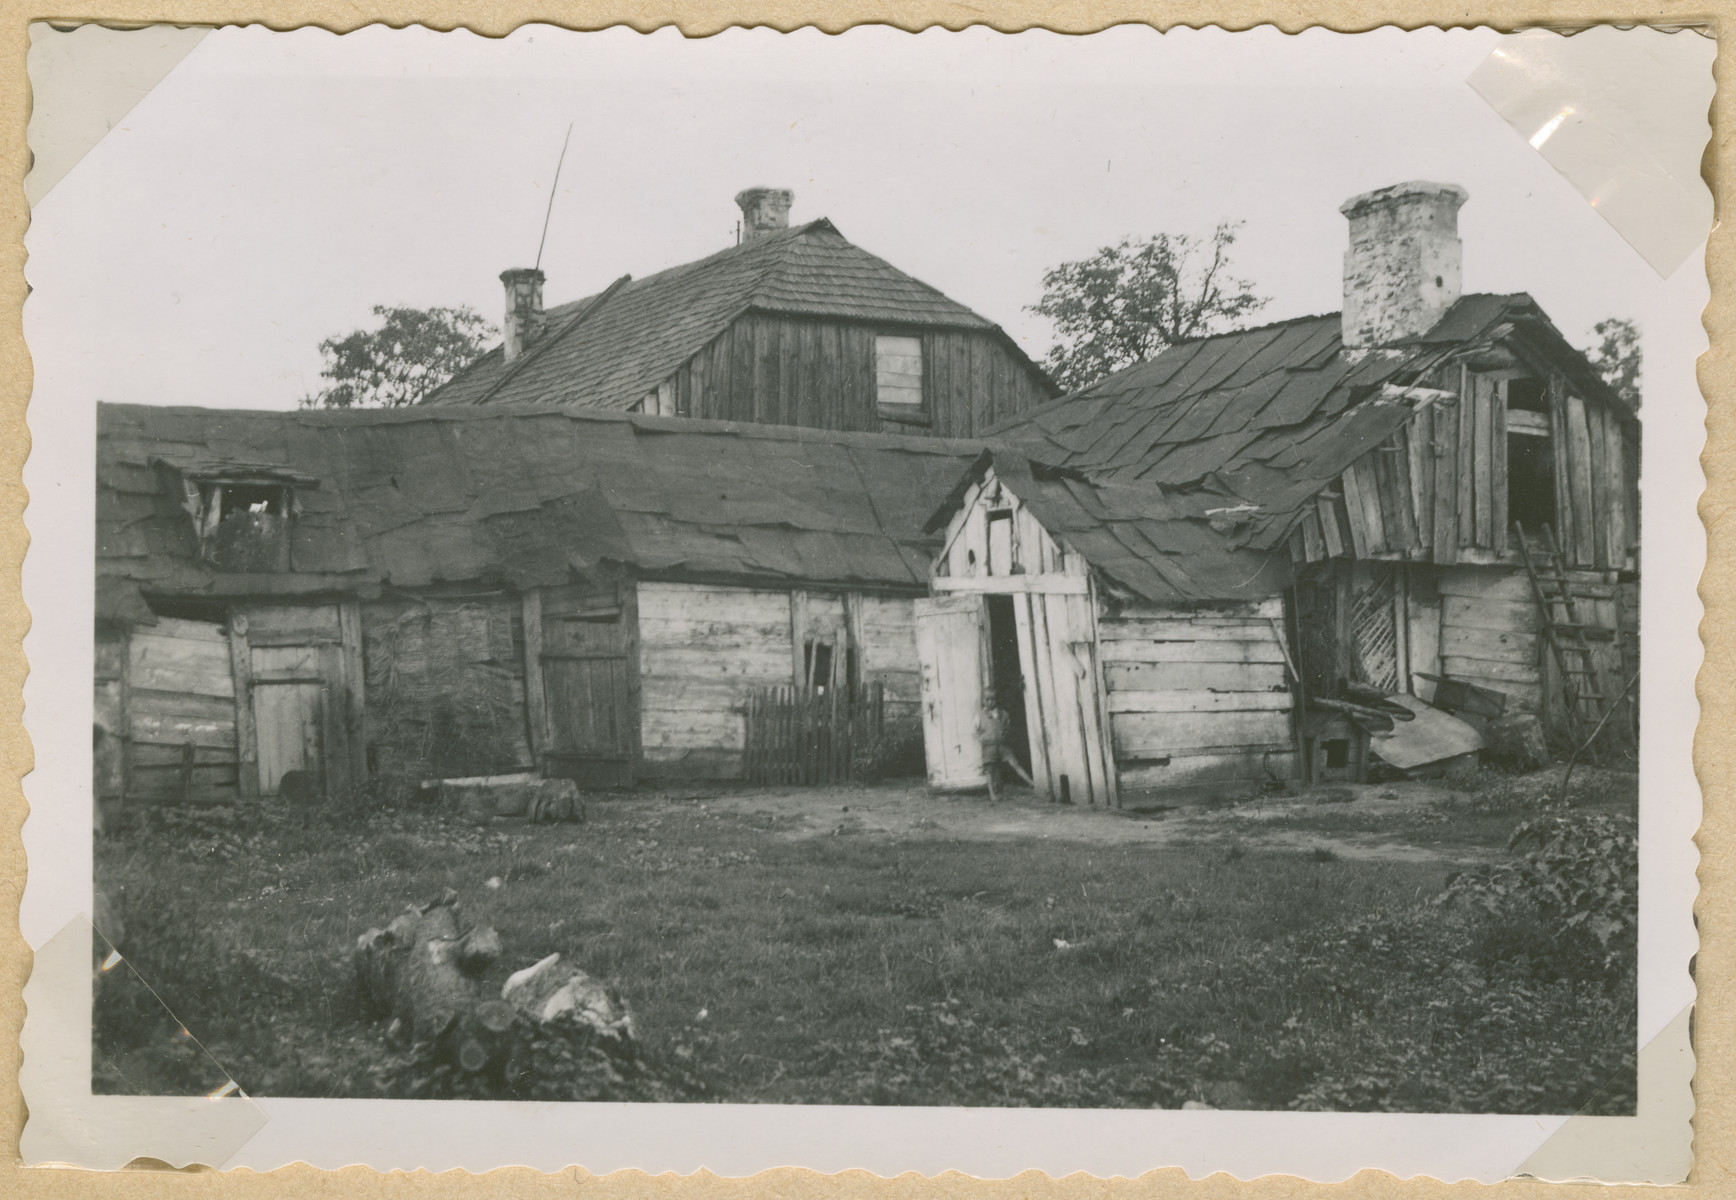 An exterior photograph of a wooden house in an unidentified town in Poland.